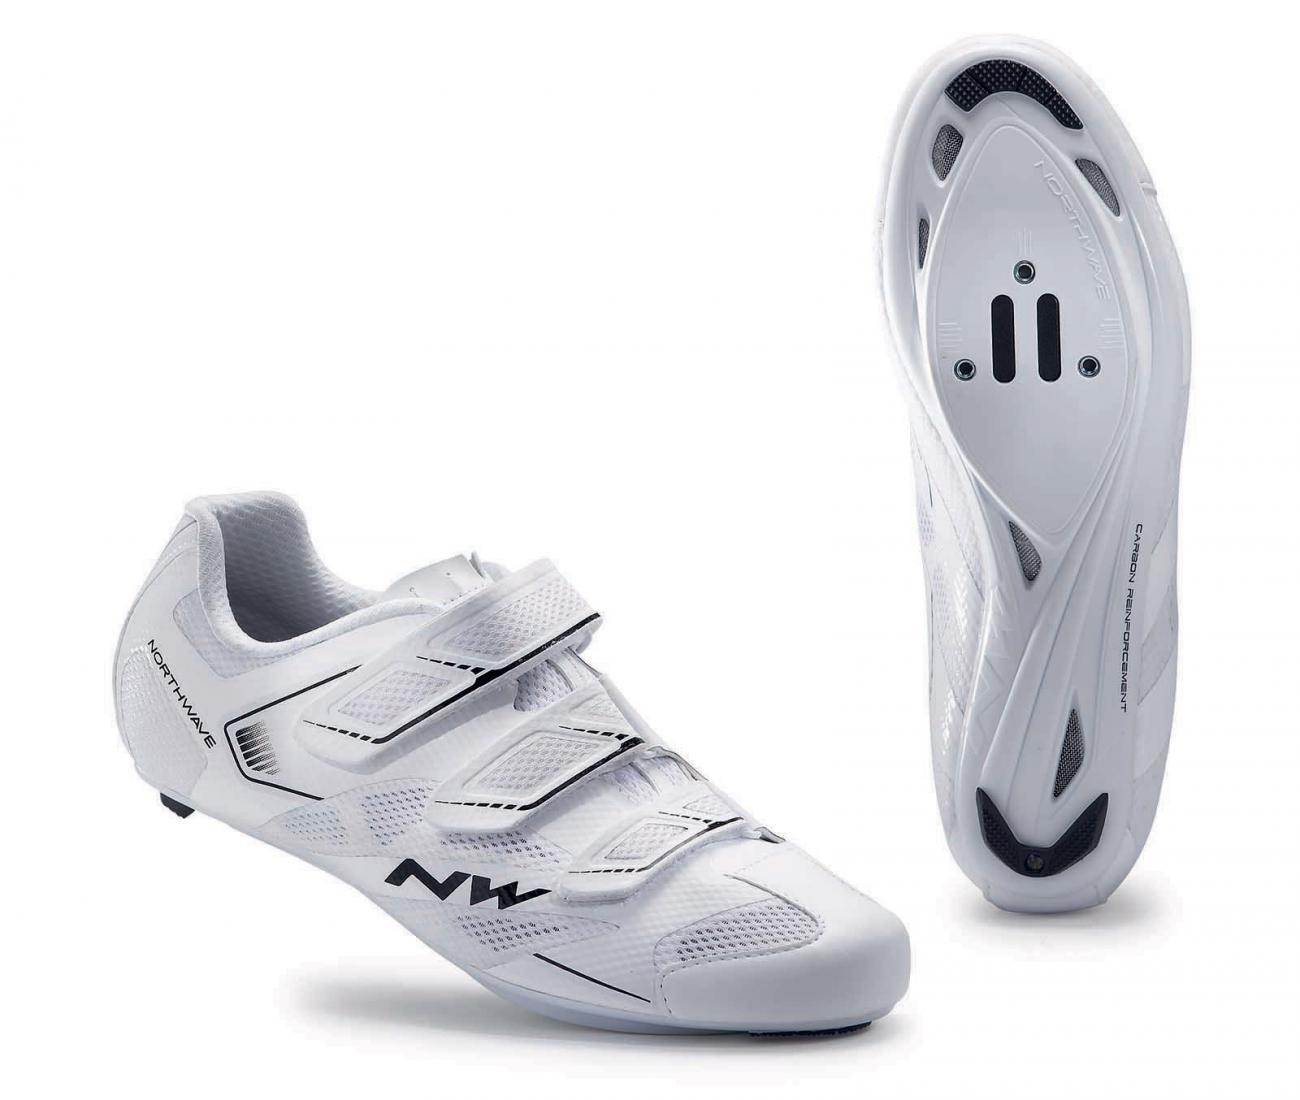 Best price Northwave Man road shoes SONIC 2 | Italy2us.com